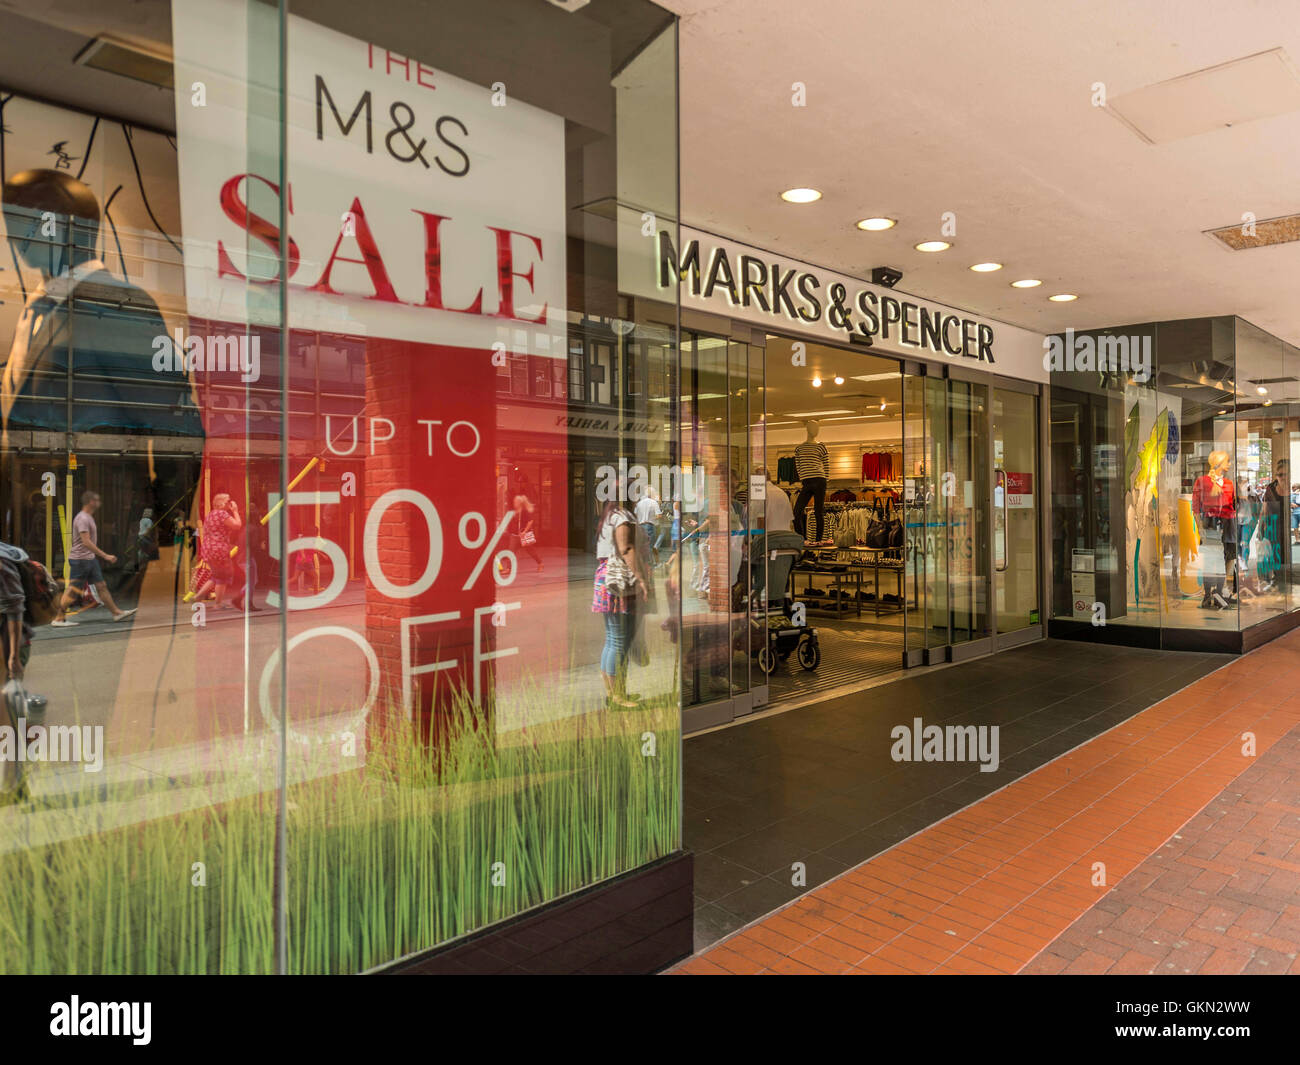 M&S Retail Outlet, Exeter City Centre, Devon - Stock Image